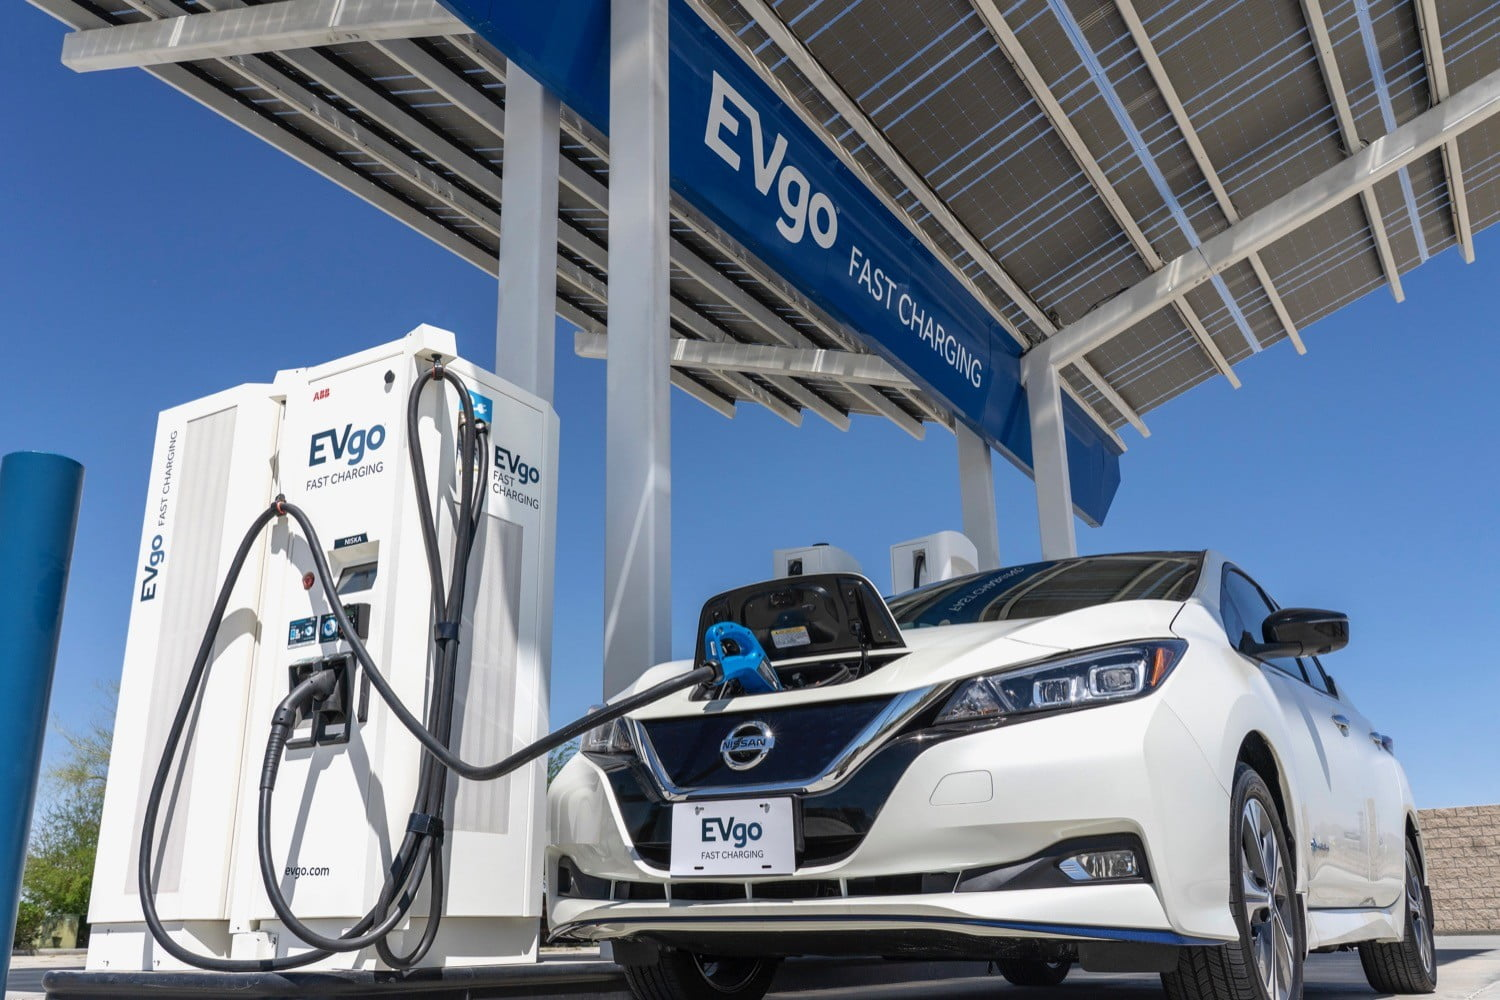 Evgo Charging Stations >> Nissan And Evgo Will Add 200 Fast Charging Stations For